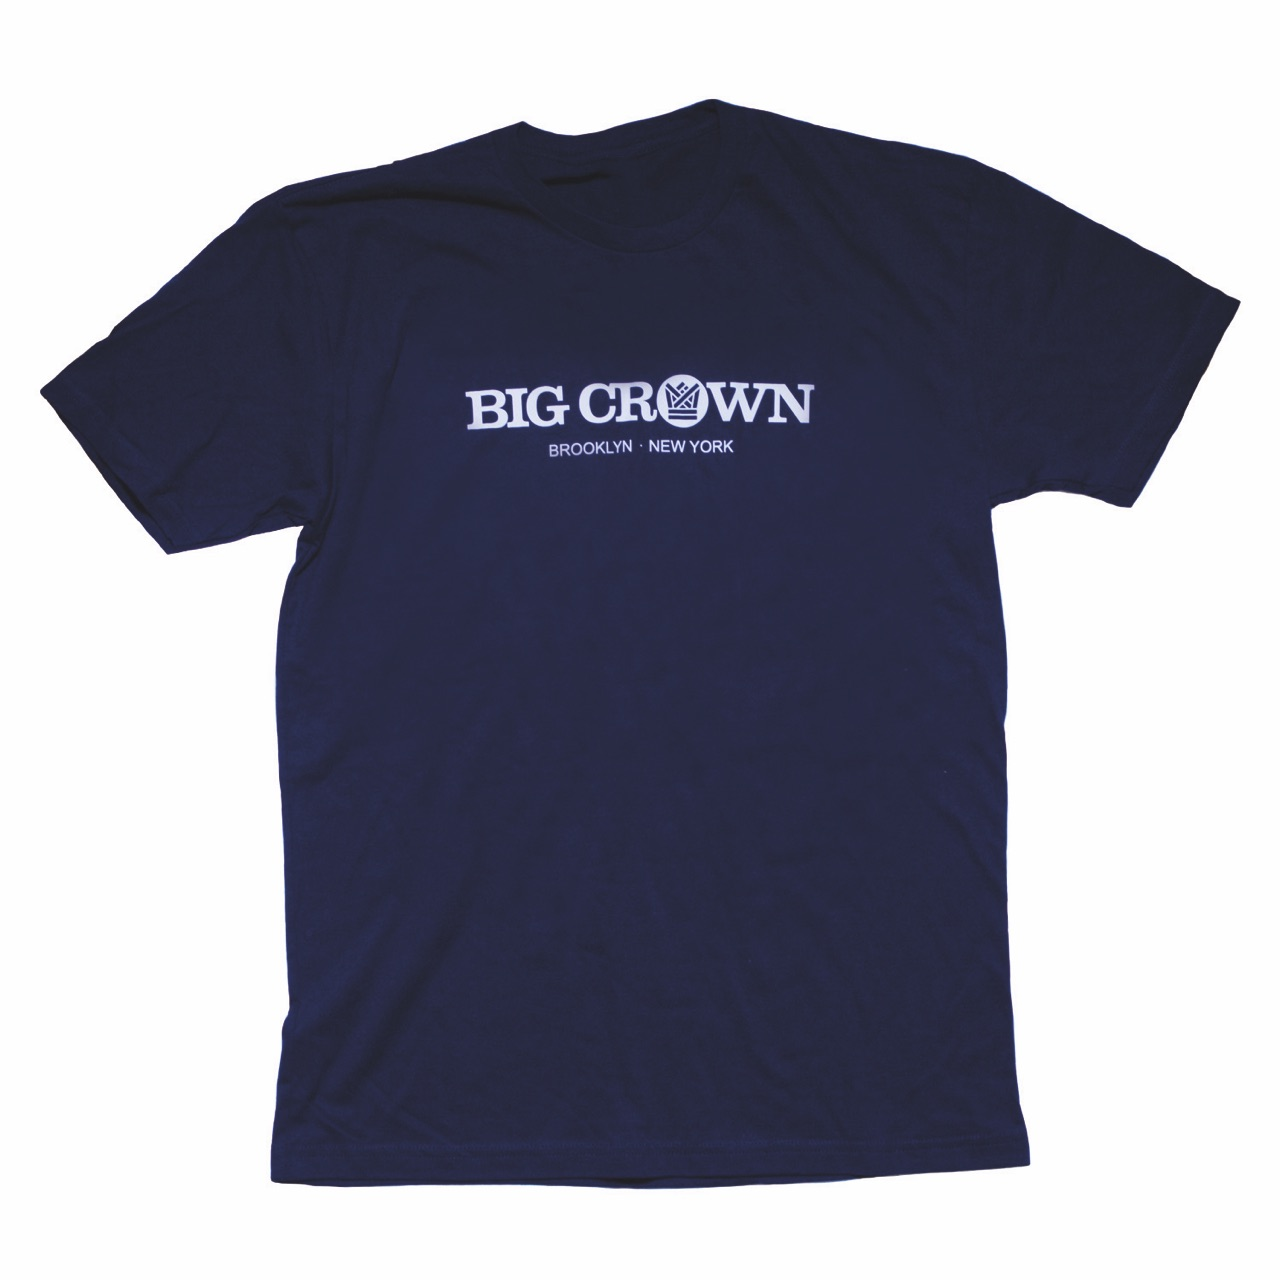 big crown logo tee shirt